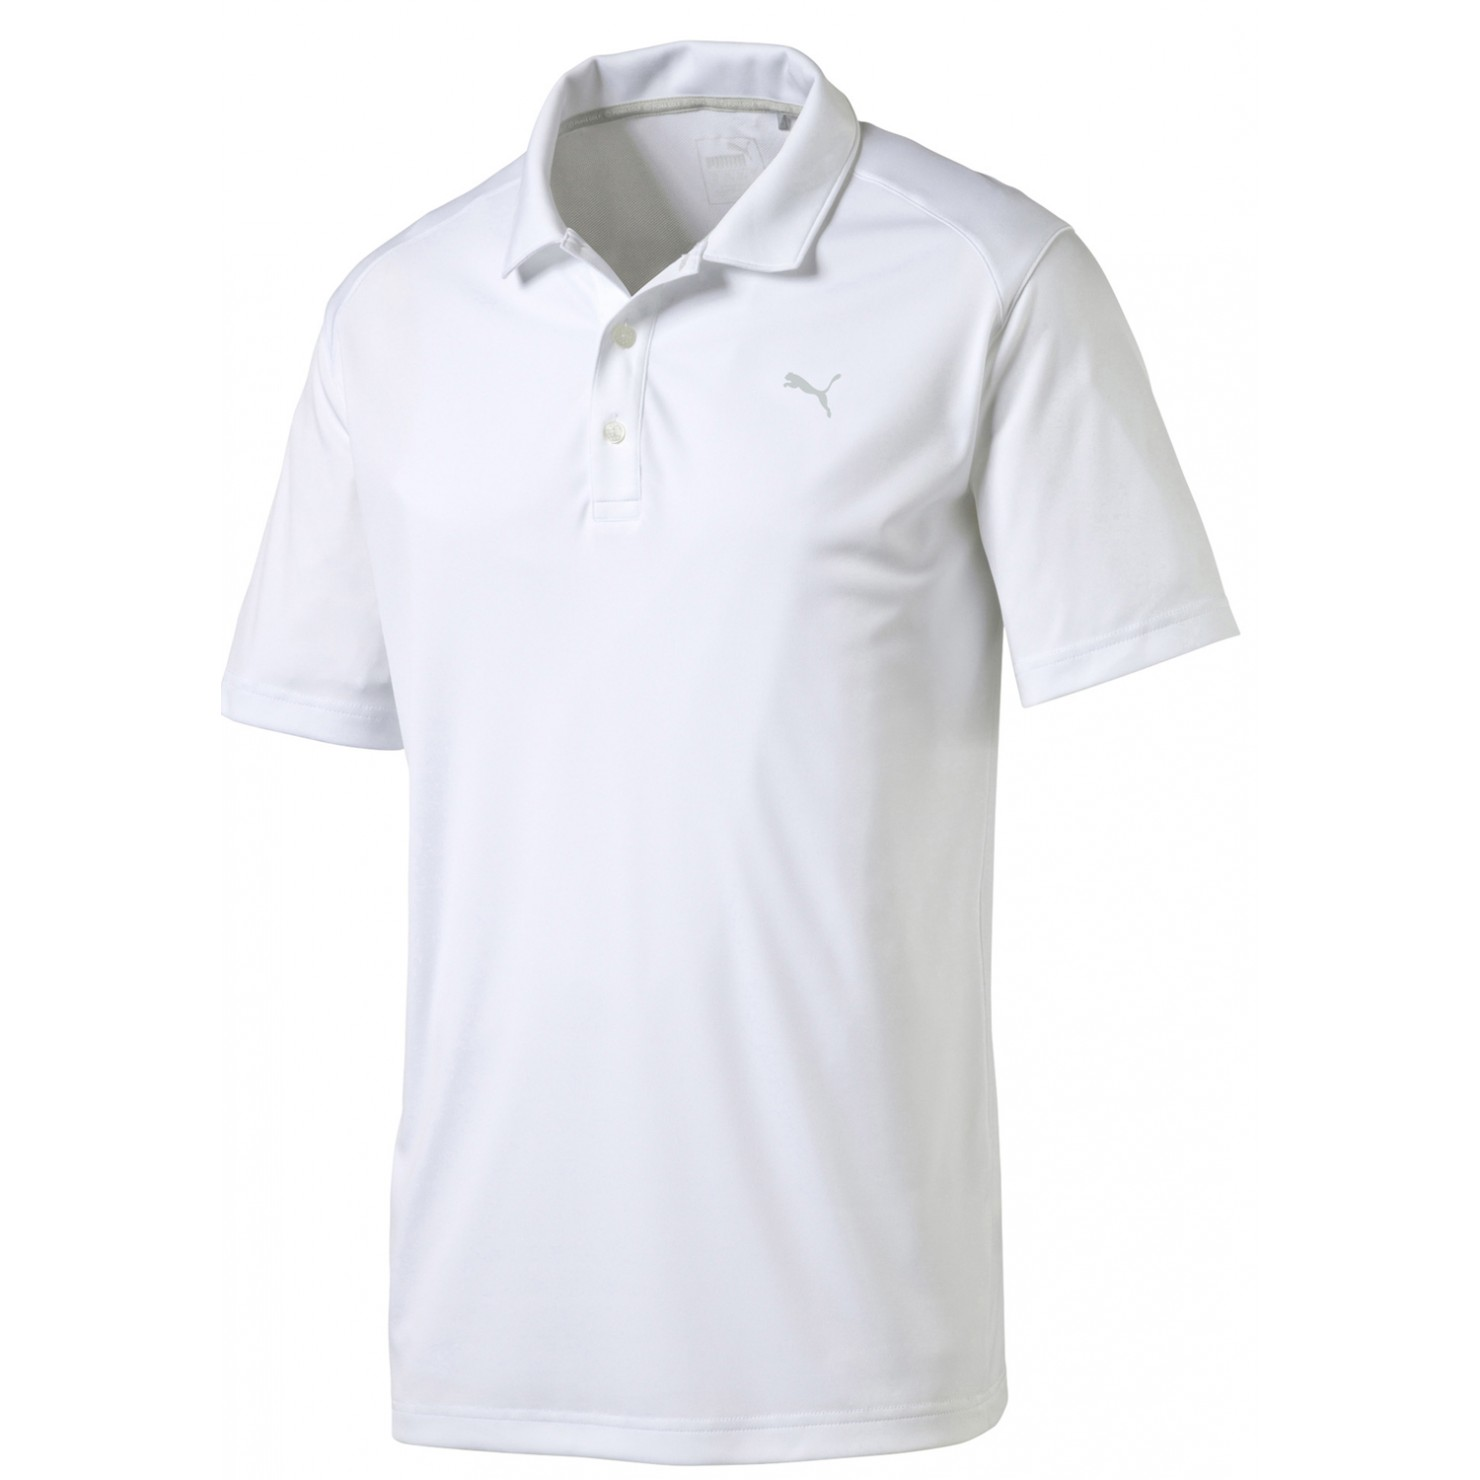 New 2017 Puma Golf Essential Pounce Mens Polo Shirt 570462 - Pick Size;  Picture 2 of 2